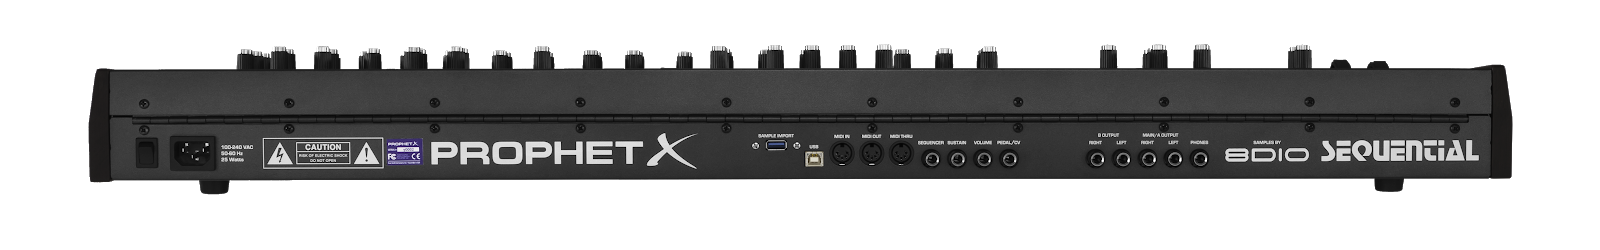 MATRIXSYNTH: Dave Smith Instruments Officially Introduces The New